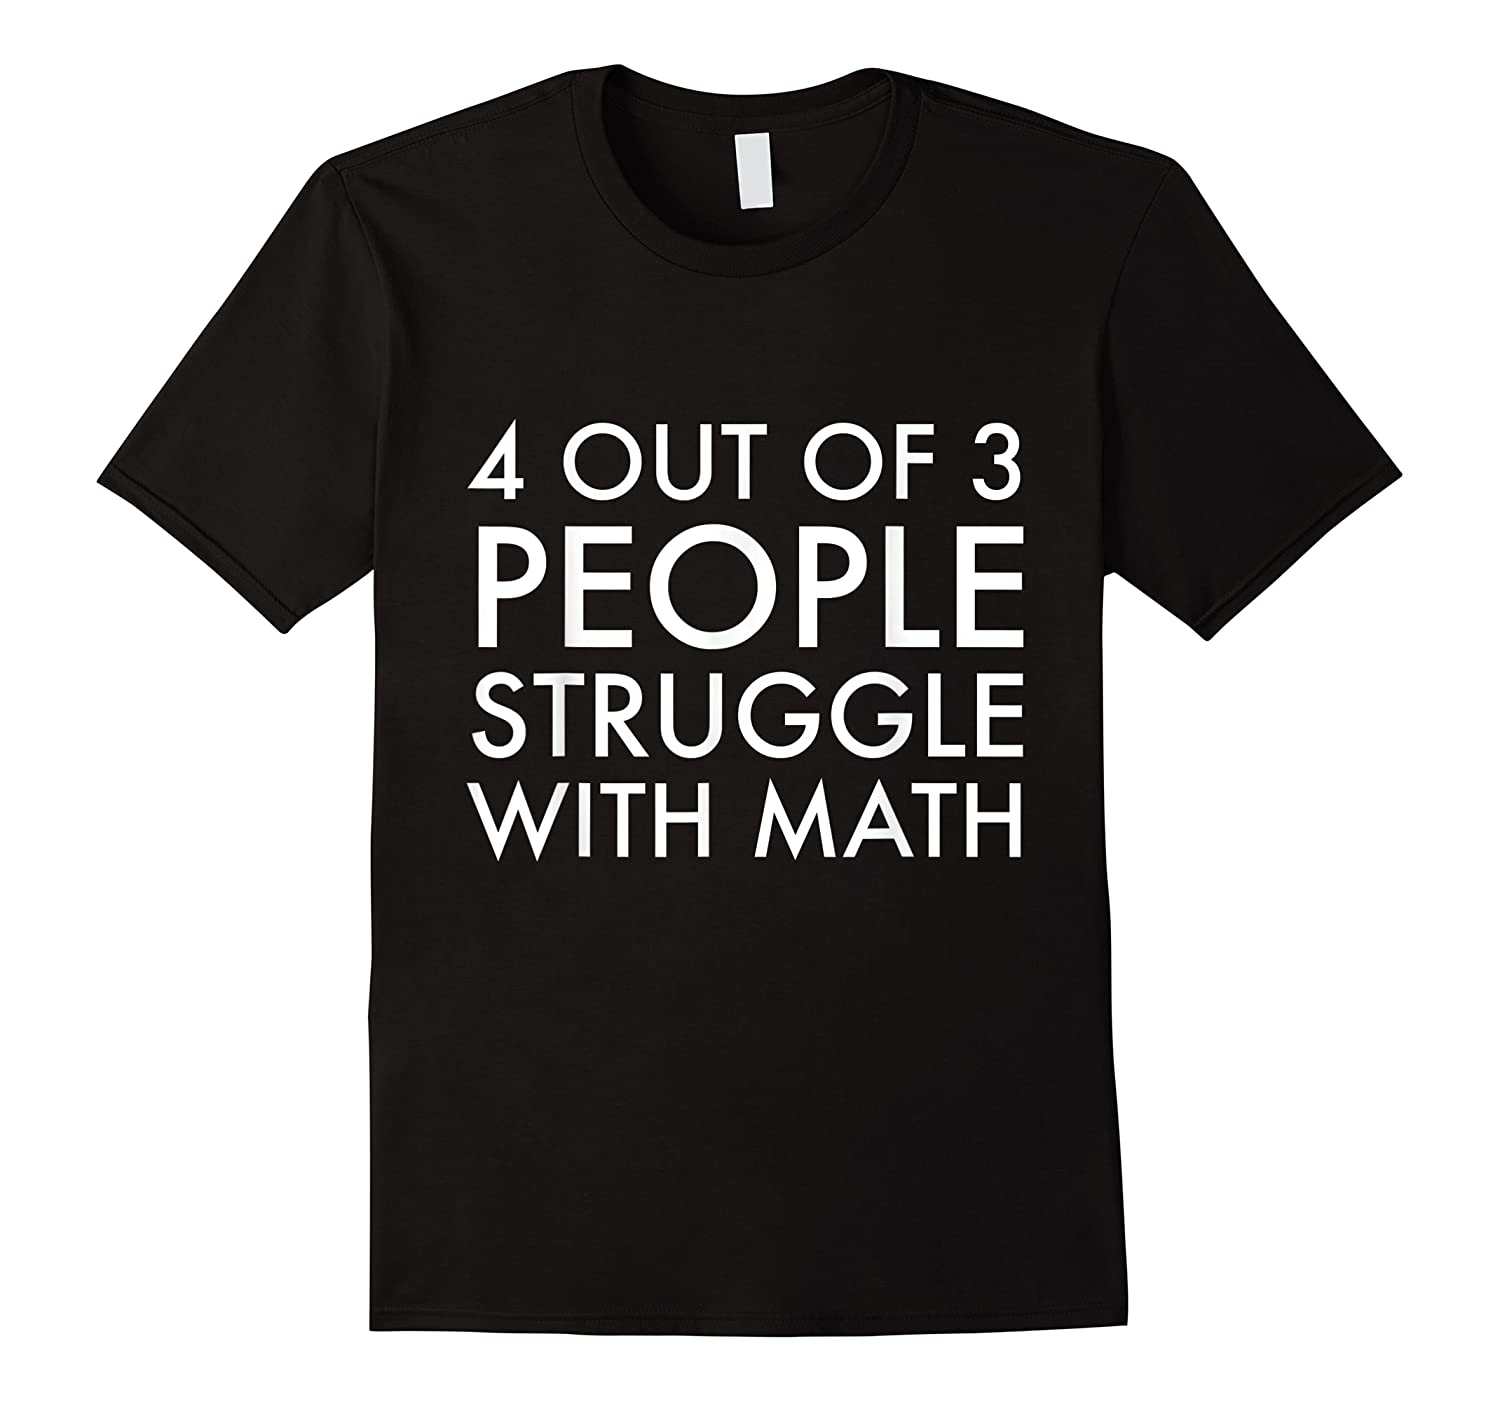 4 Out Of 3 People Struggle With Math T-shirt Geek Nerd Tee